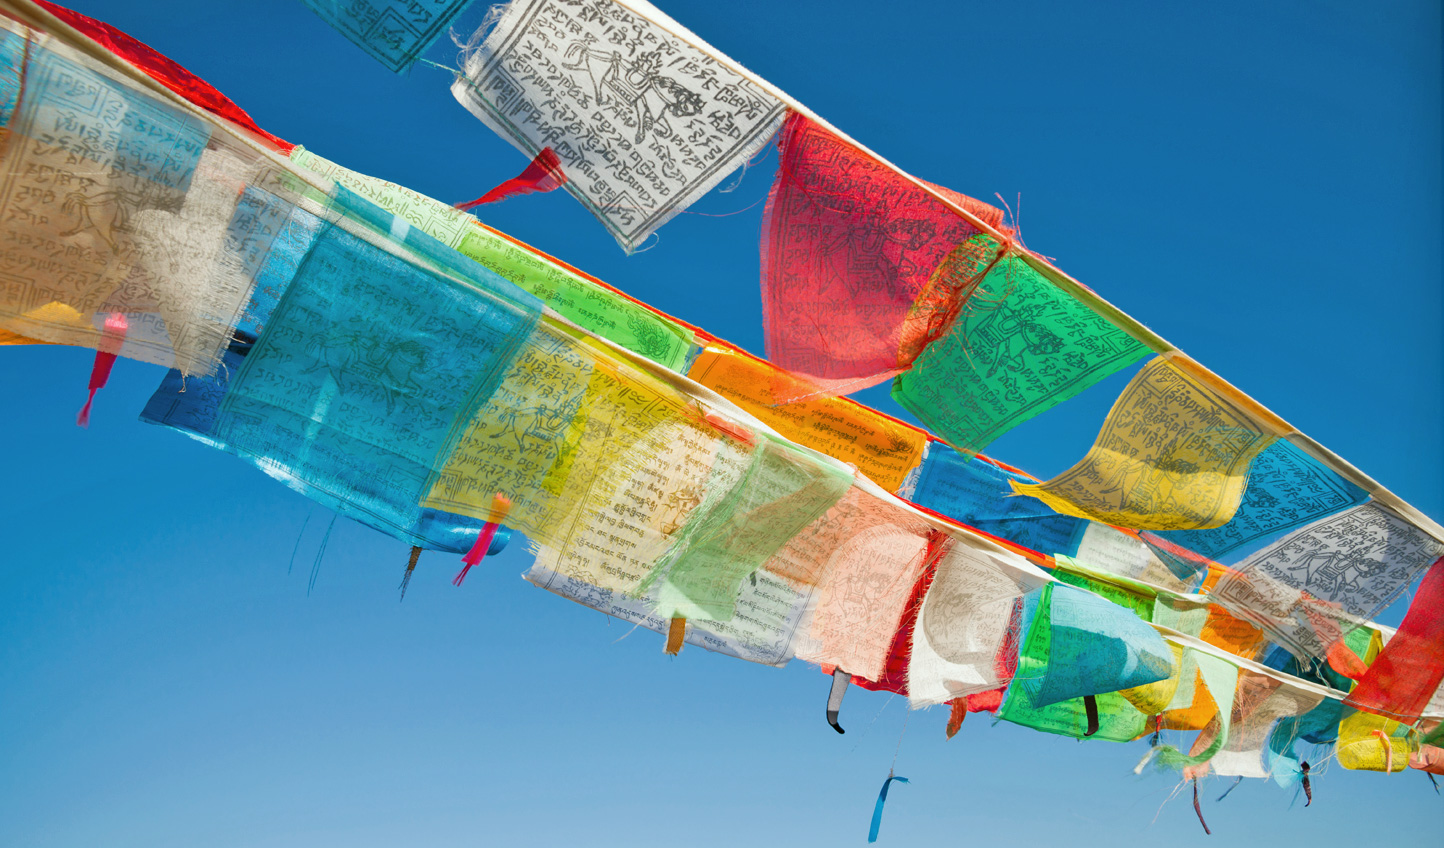 Leave your mark in Bhutan by hoisting your own prayer flag